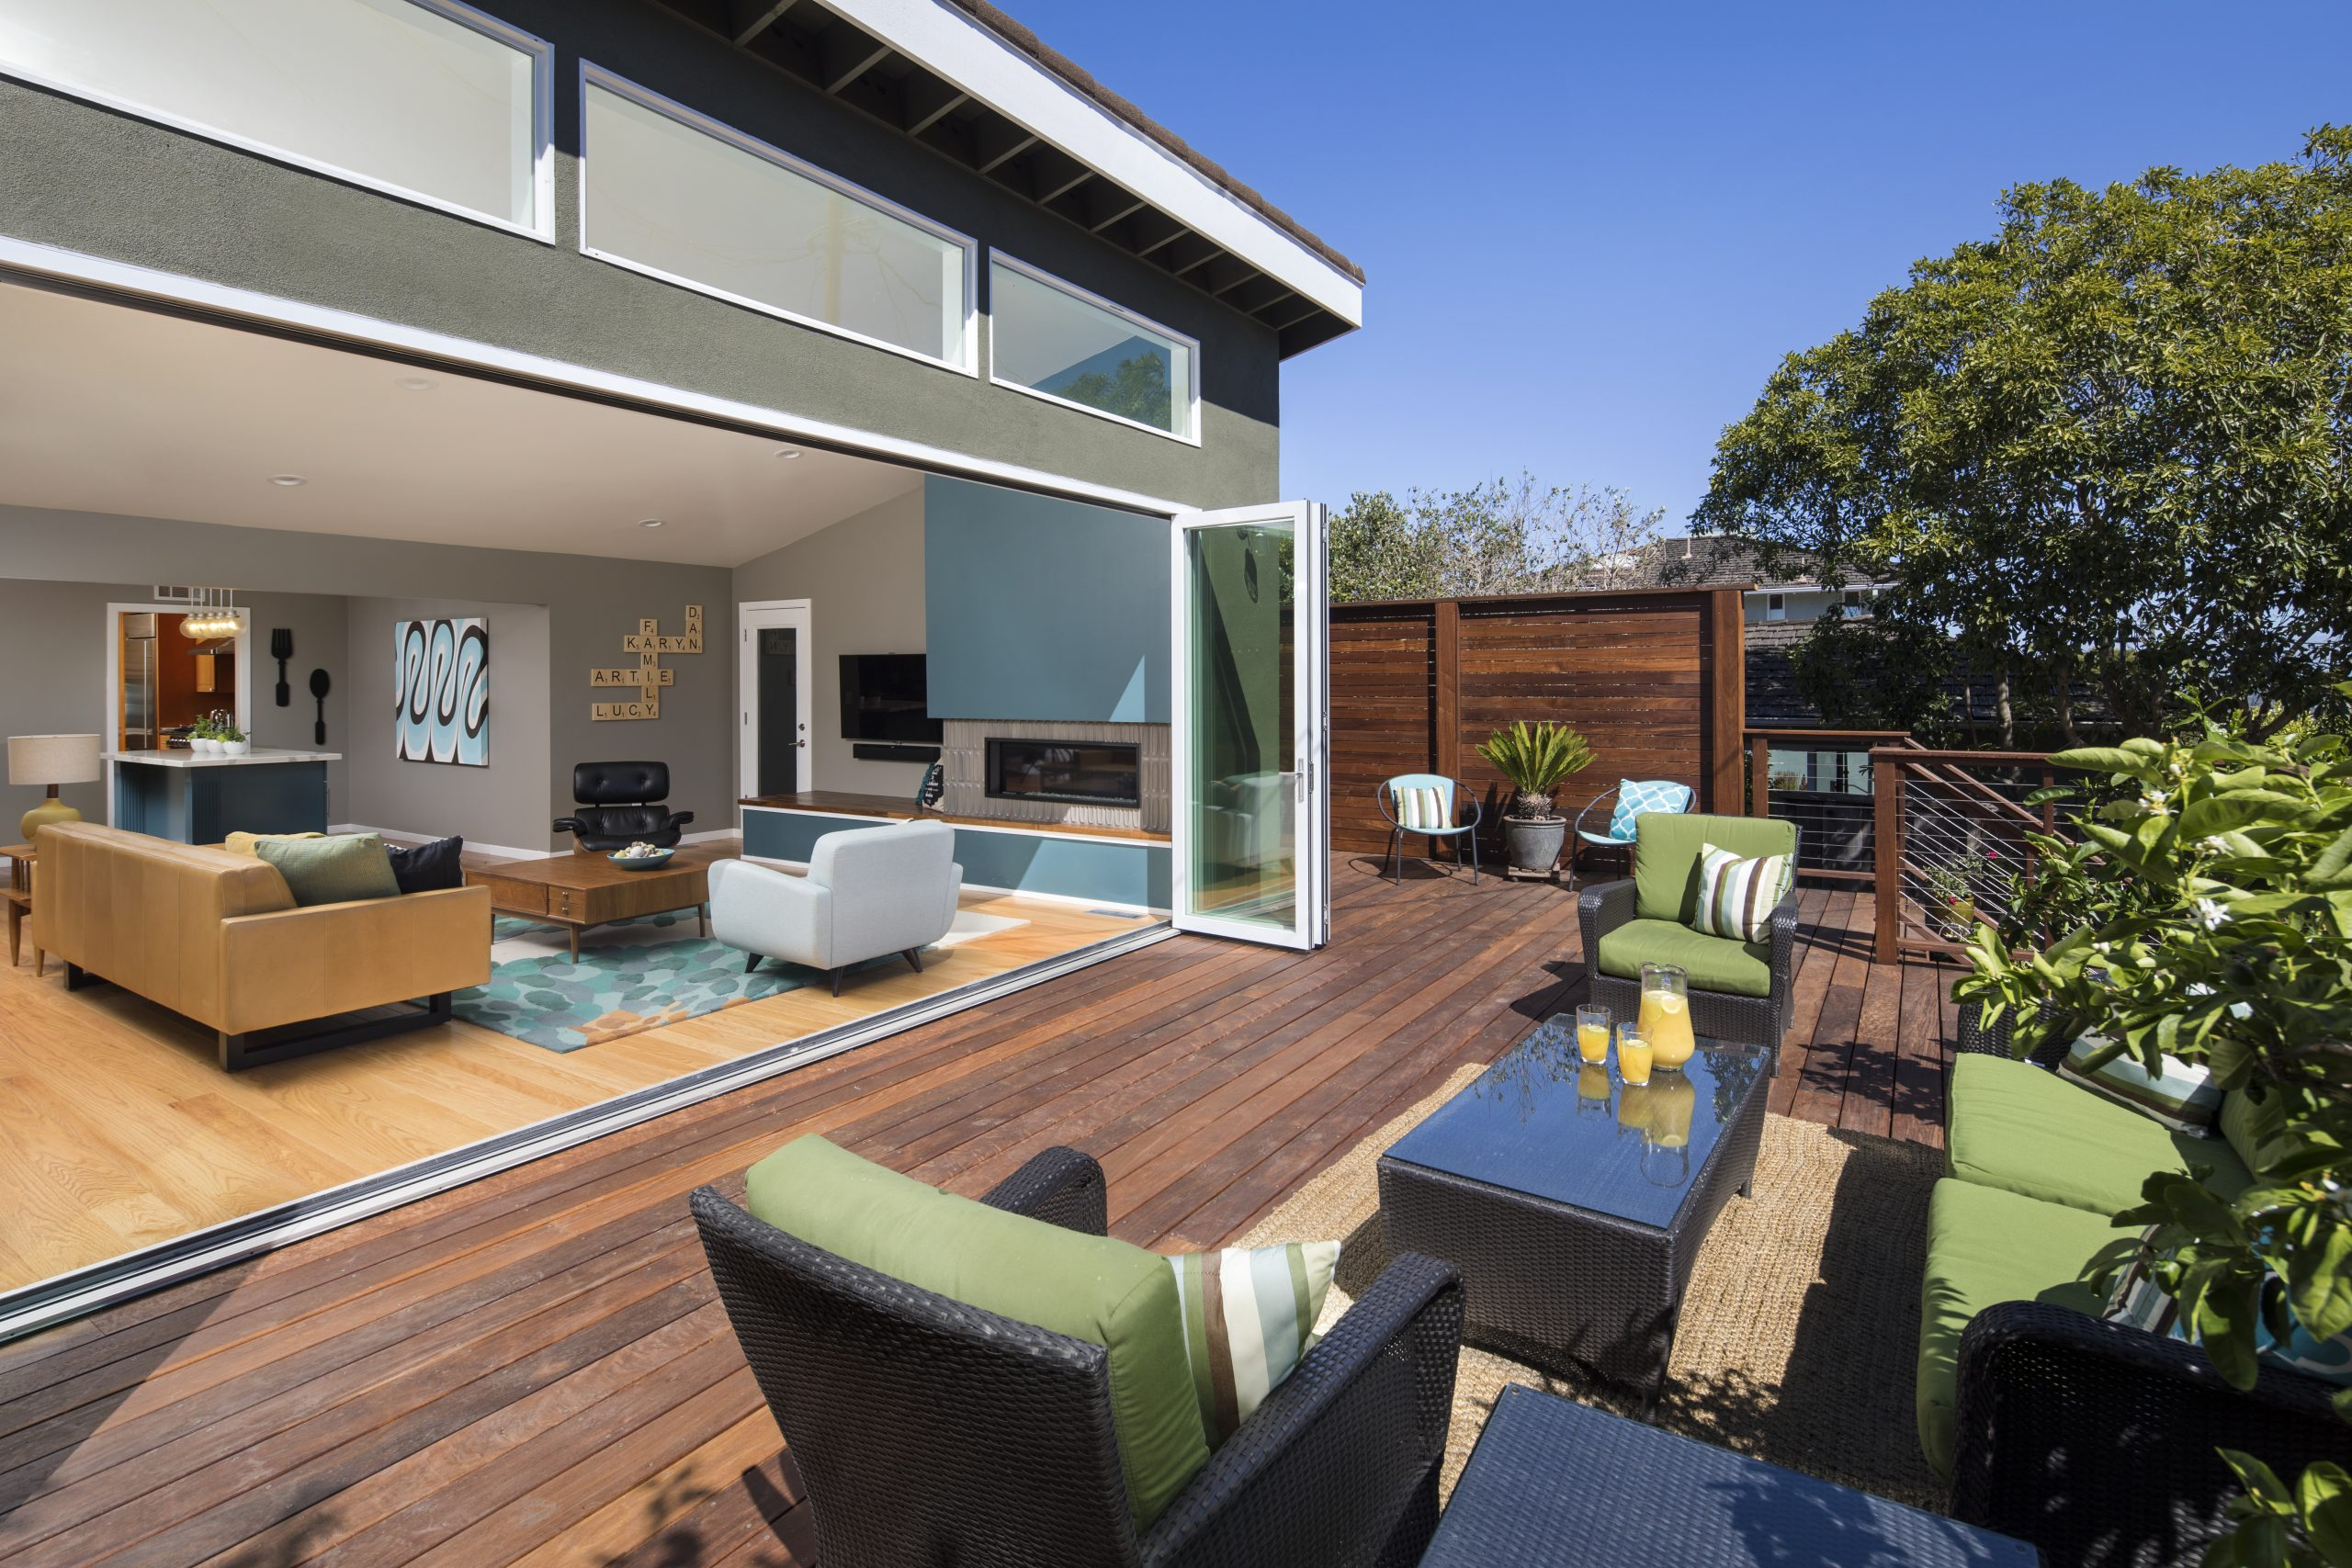 A backyard deck in Los Altos on a sunny day